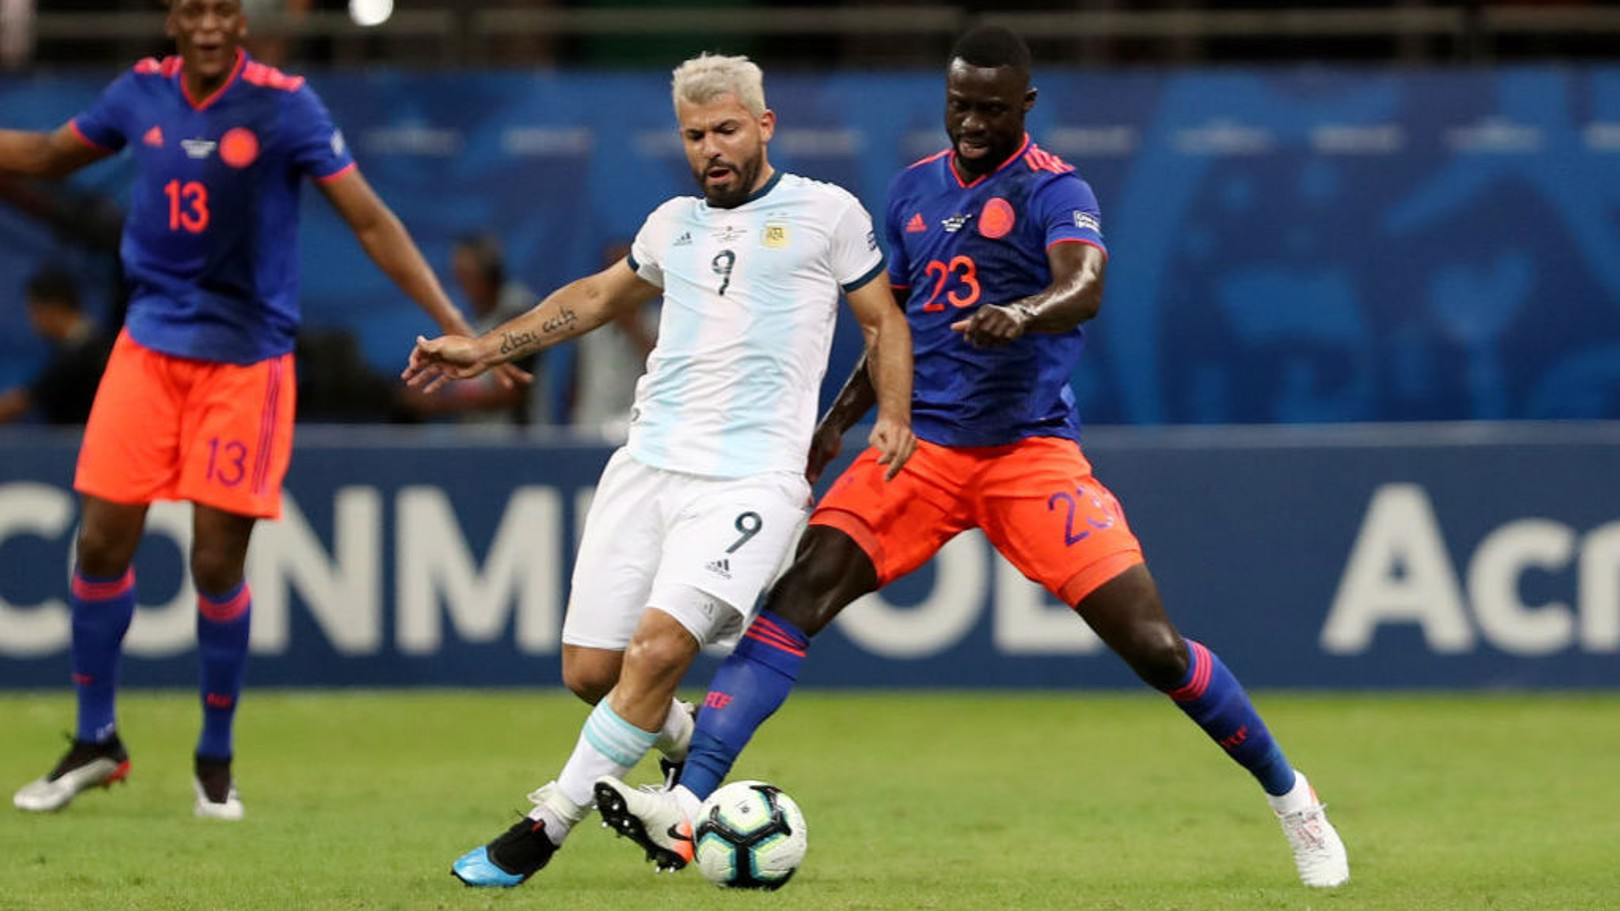 ACTION MAN: Sergio Aguero looks to gain possession from Colombia's Davinson Sanchez